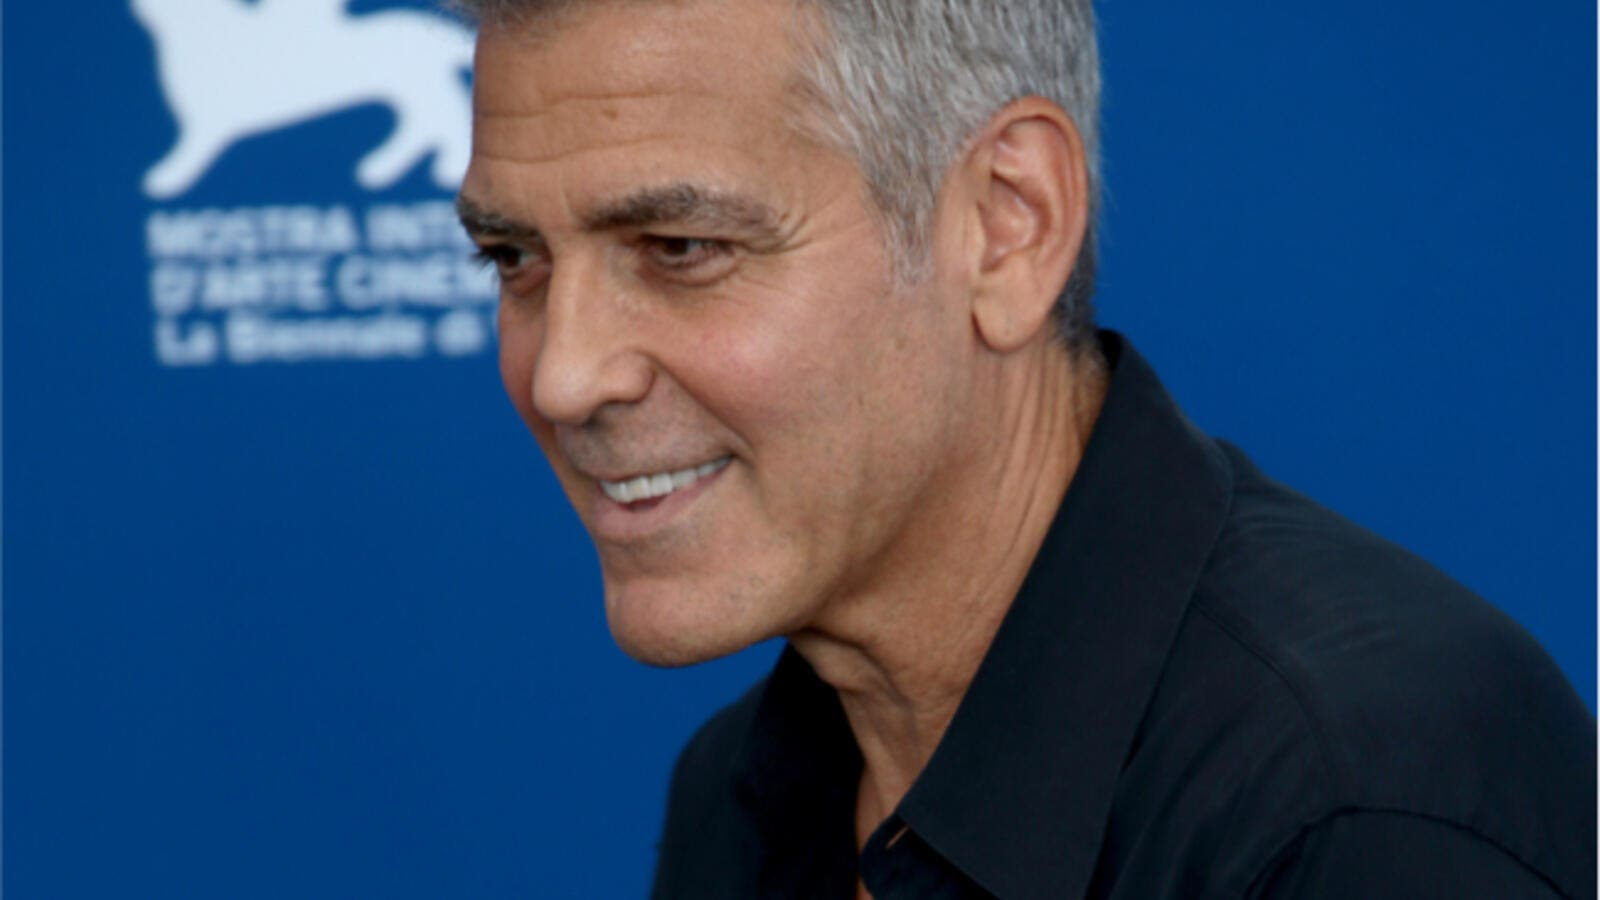 George Clooney is the Highest Paid Actor in 2018   Al Bawaba